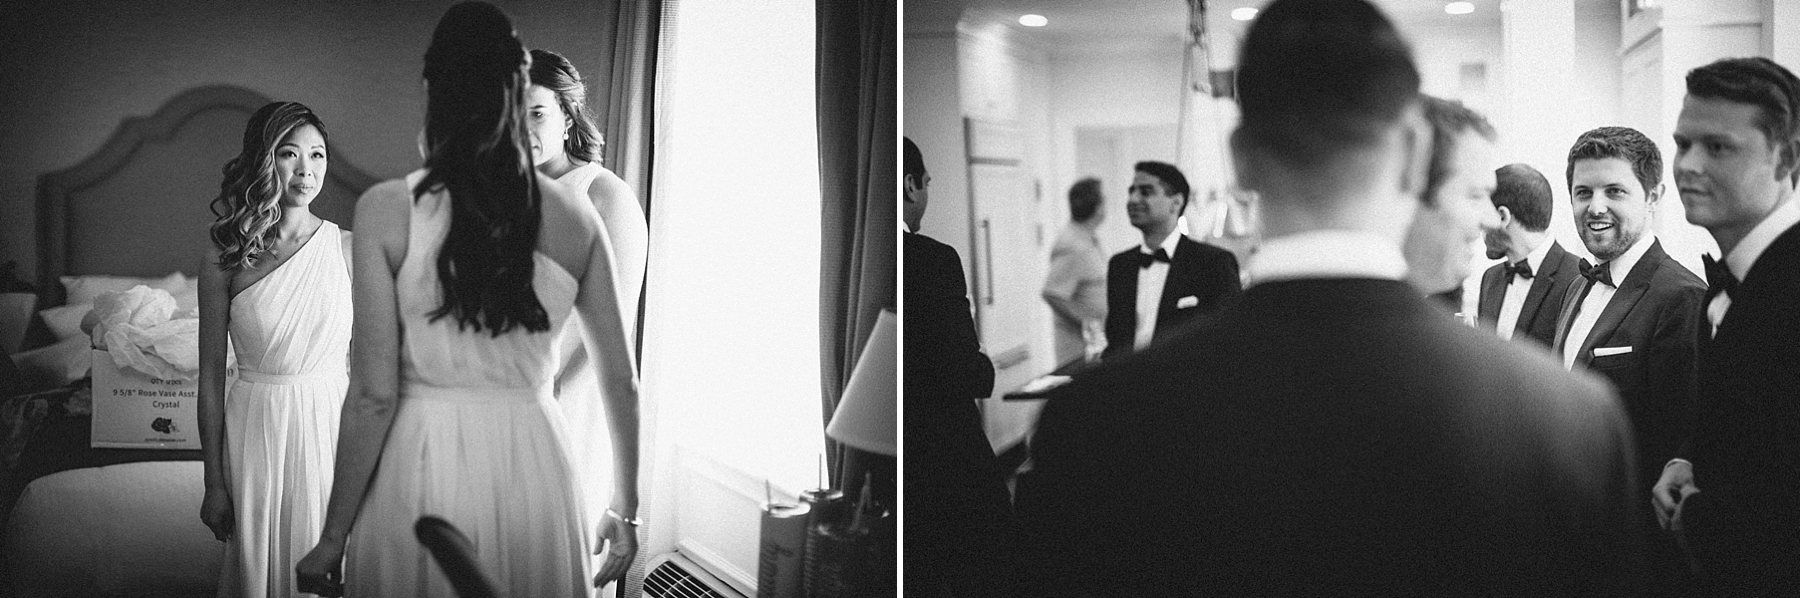 rumson_country_club_wedding_NJ_outdoor_freehold_0006.jpg